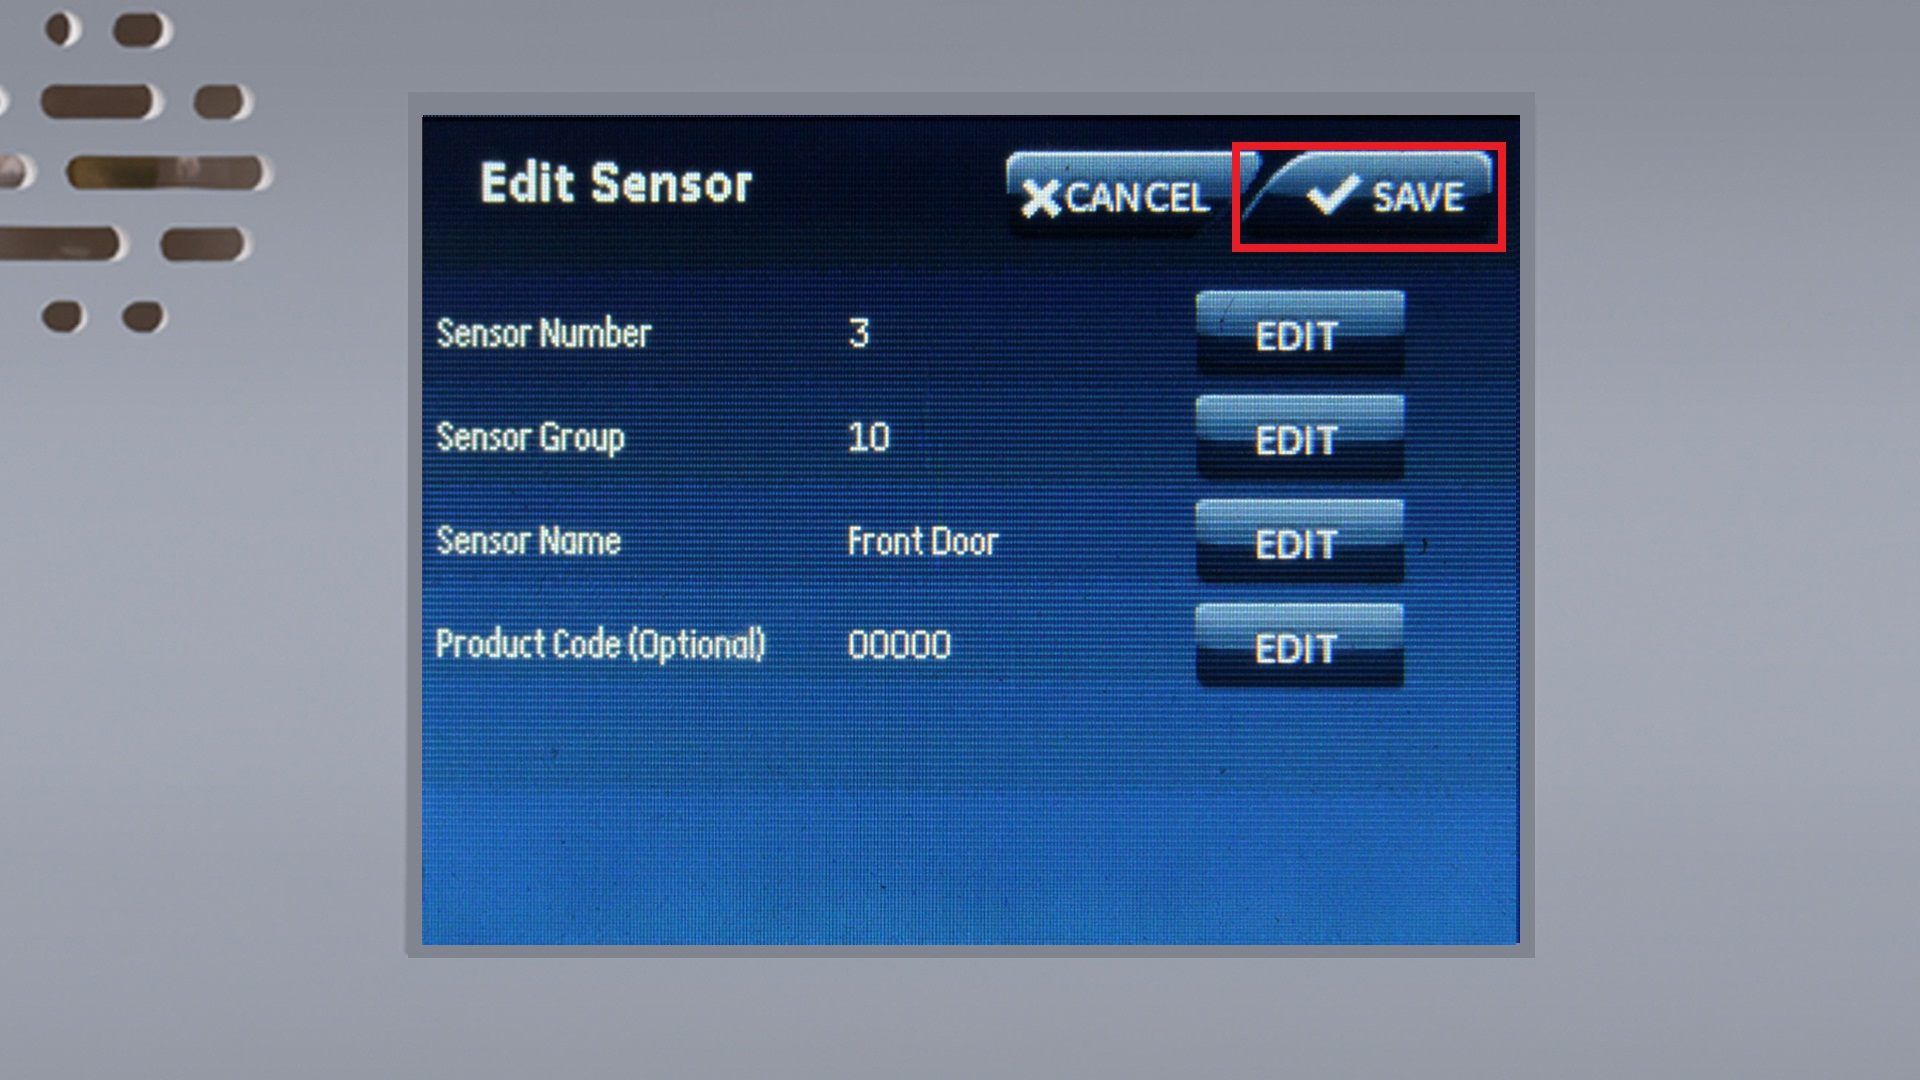 xtis-syp-Sensors_sensors_learned_-SAVE-.jpg